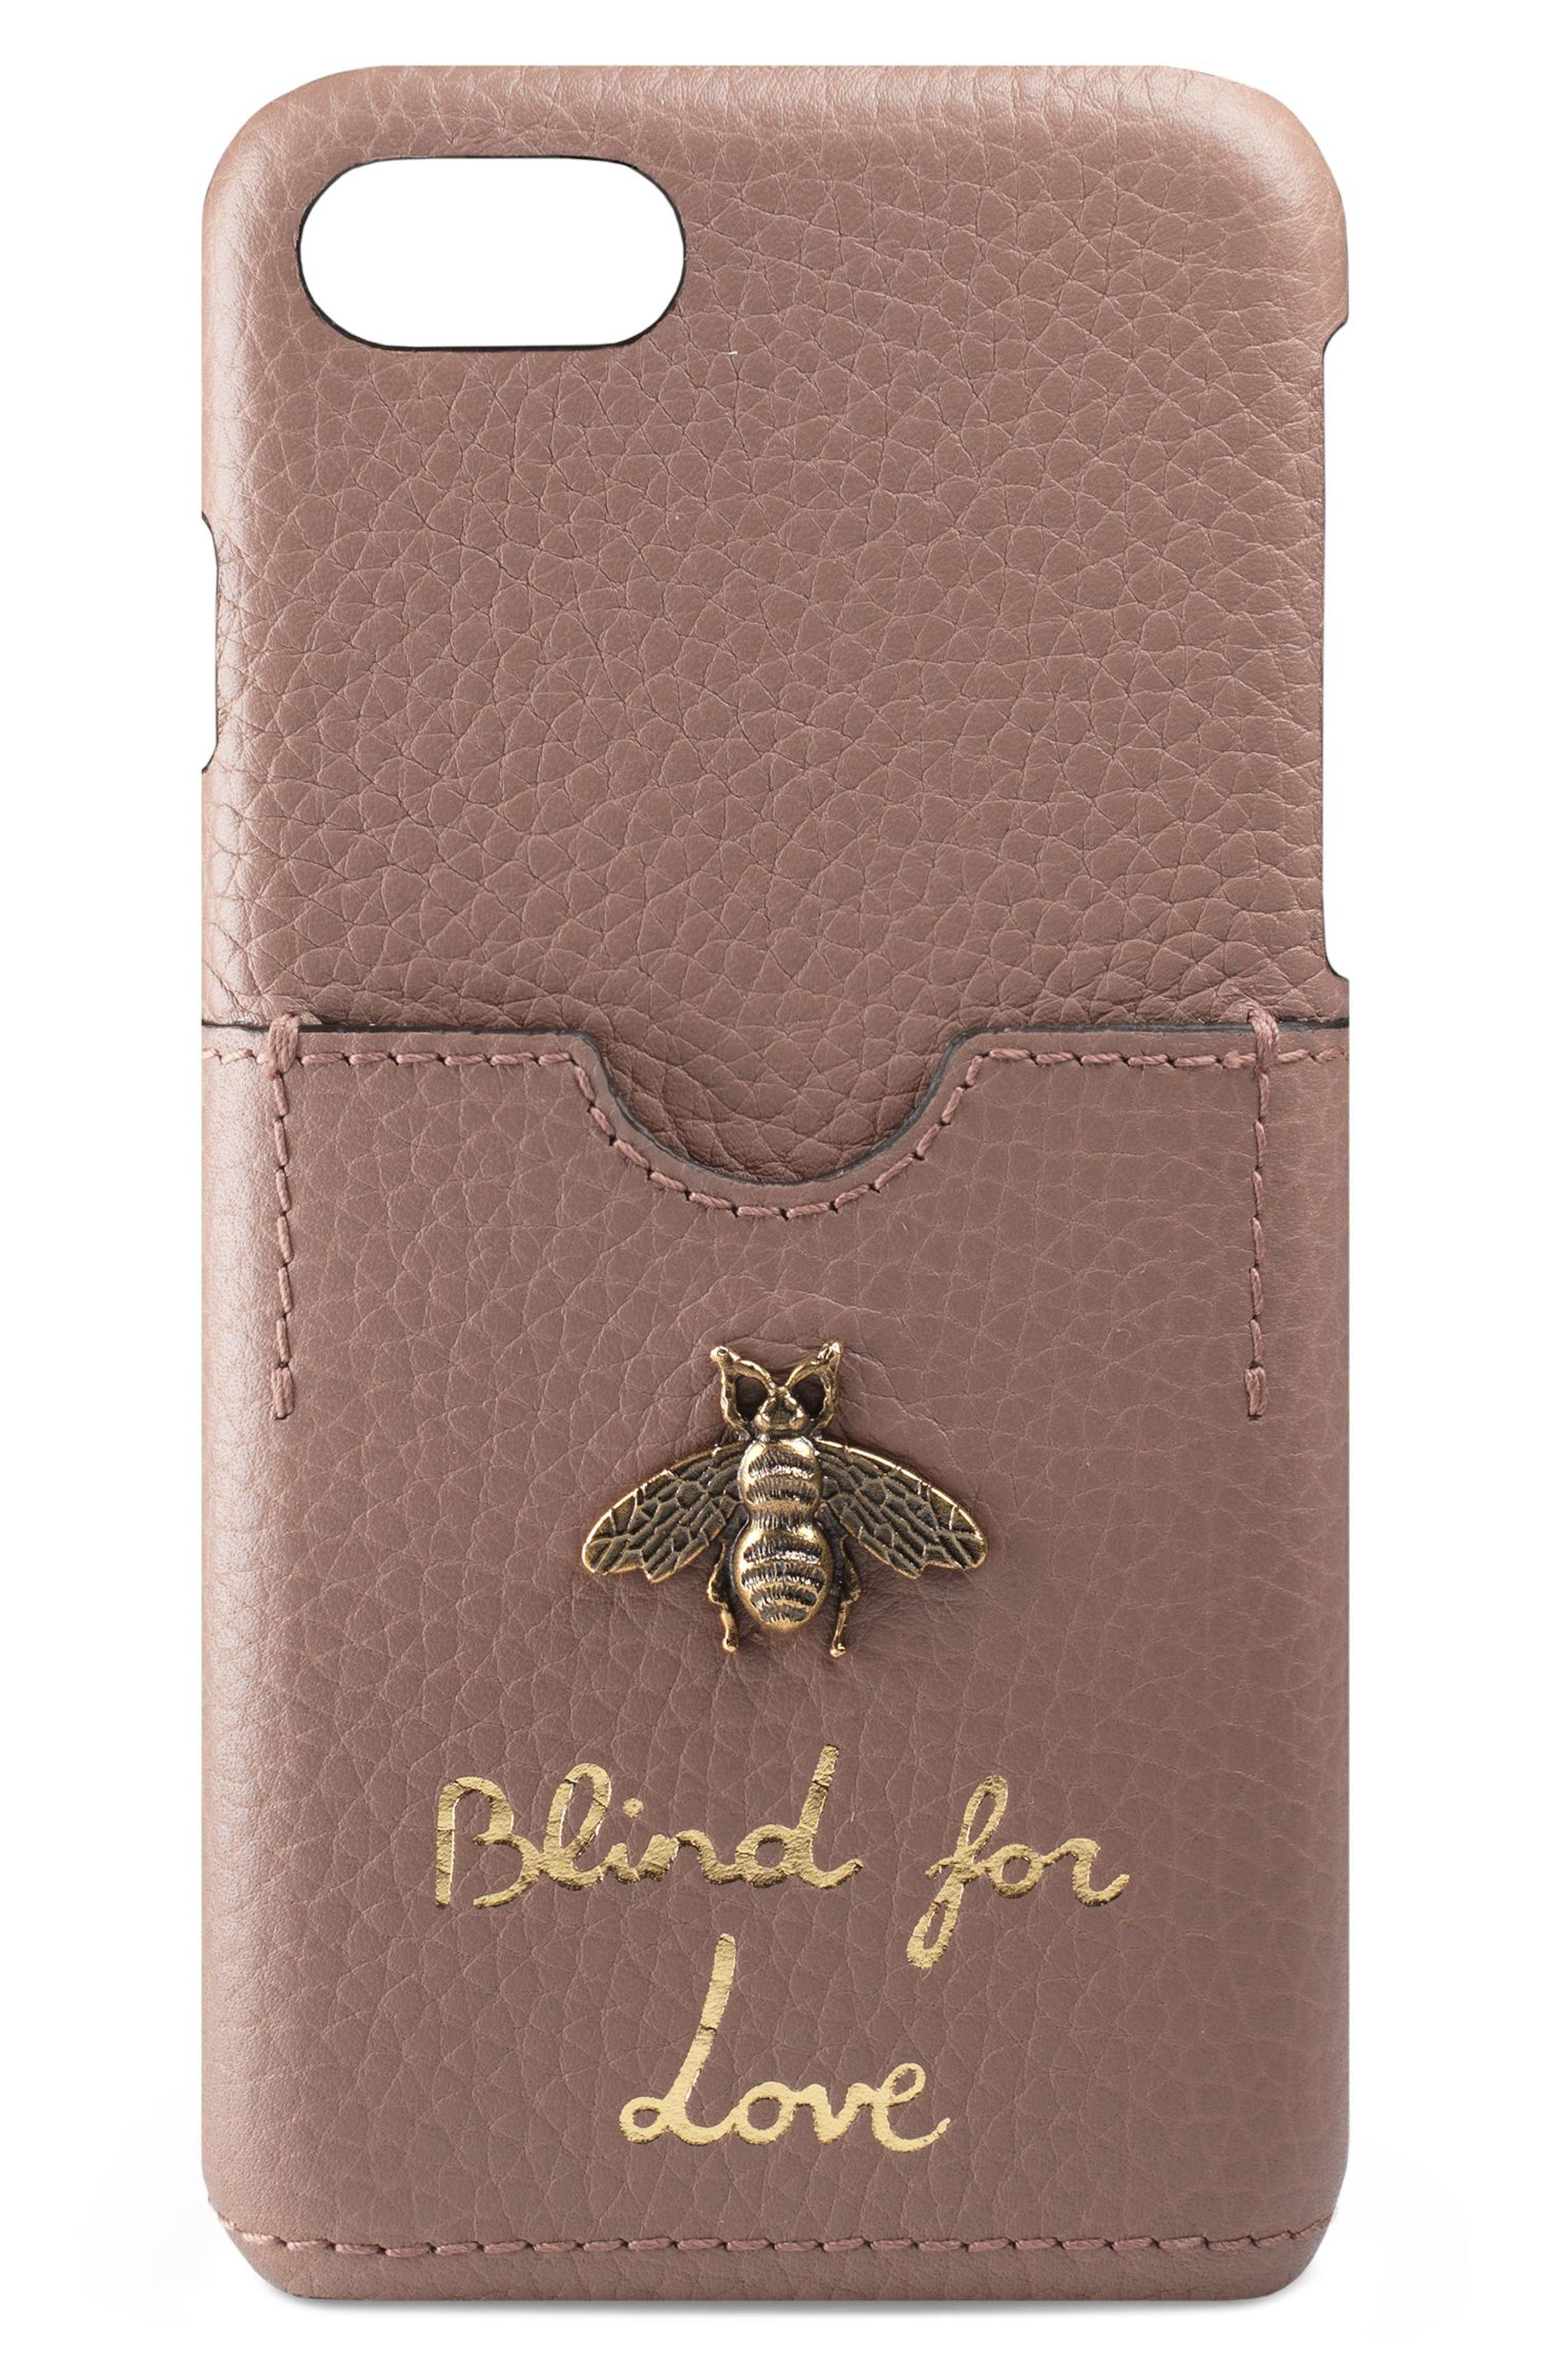 Animalier Bee Leather iPhone 7 Case,                         Main,                         color, PORCELAIN ROSE